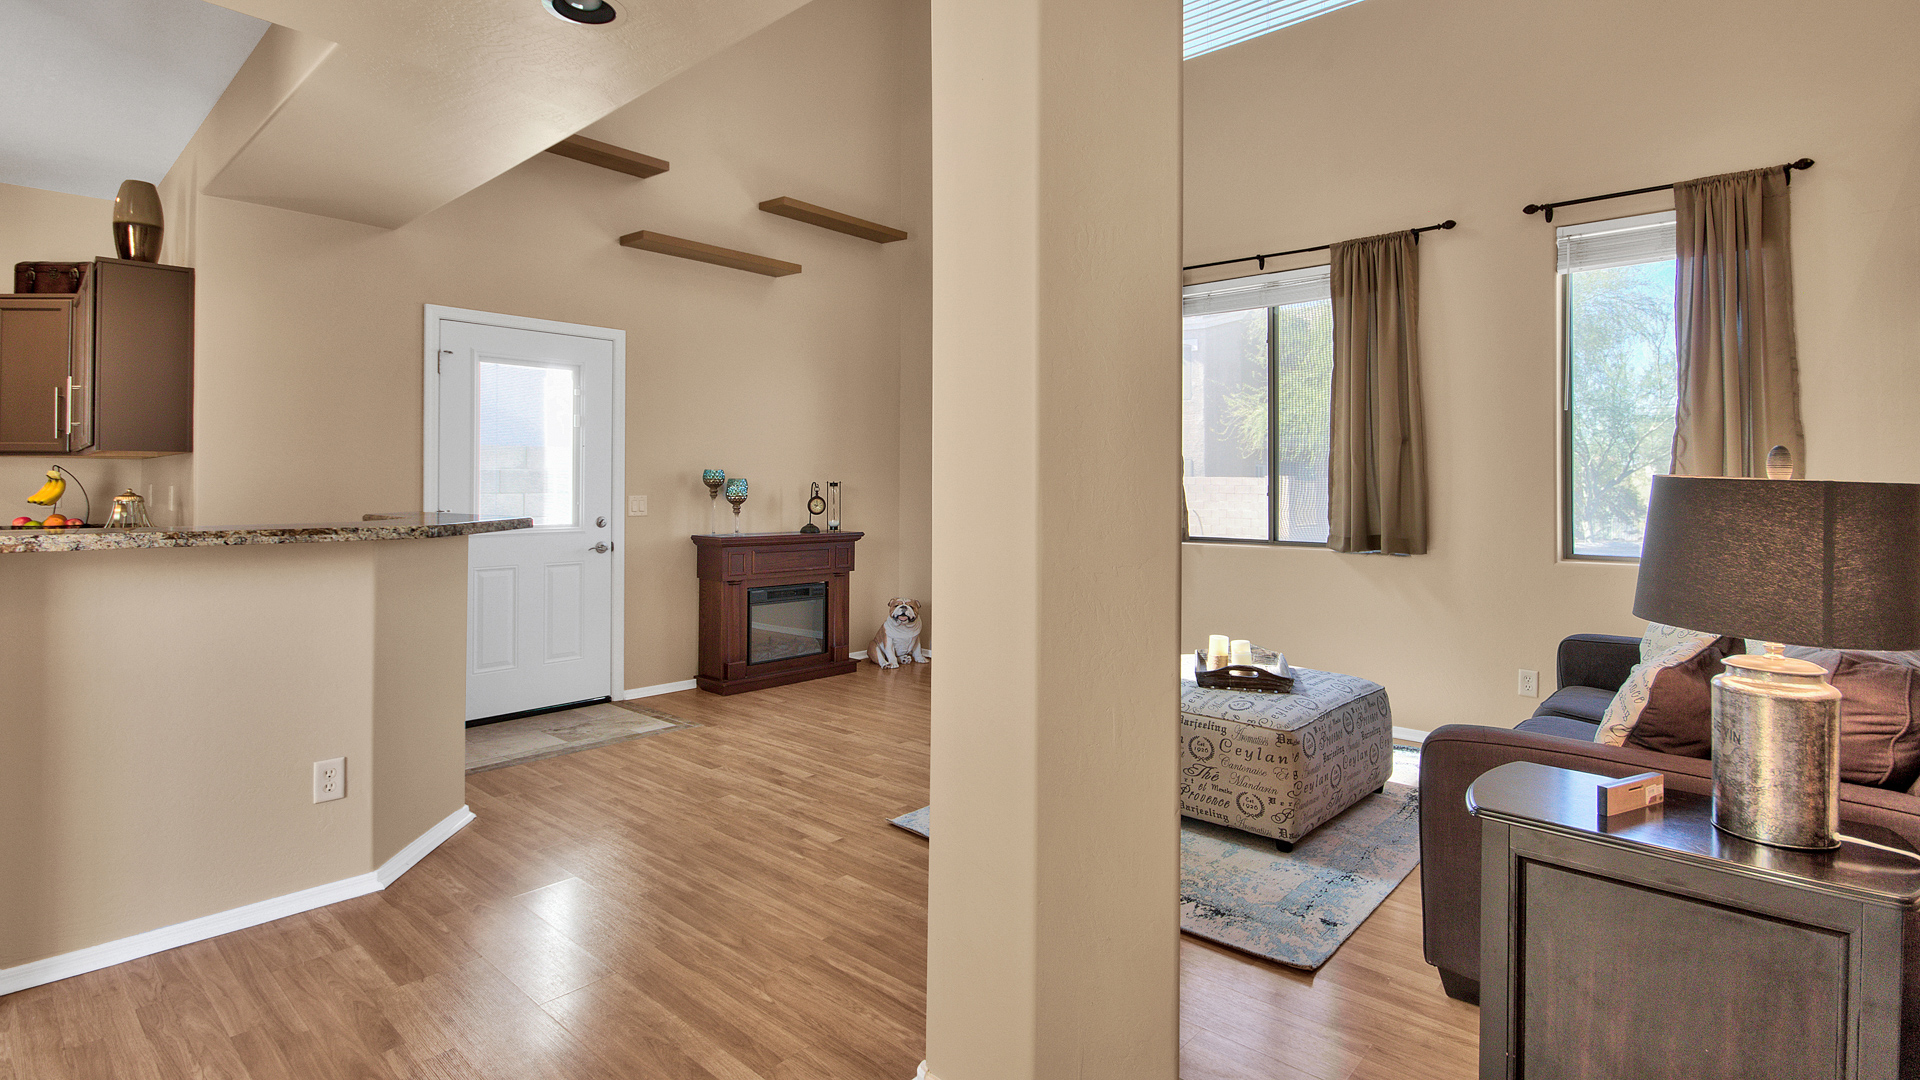 22025 n 29th drive phoenix for sale | AZHomePrices.com